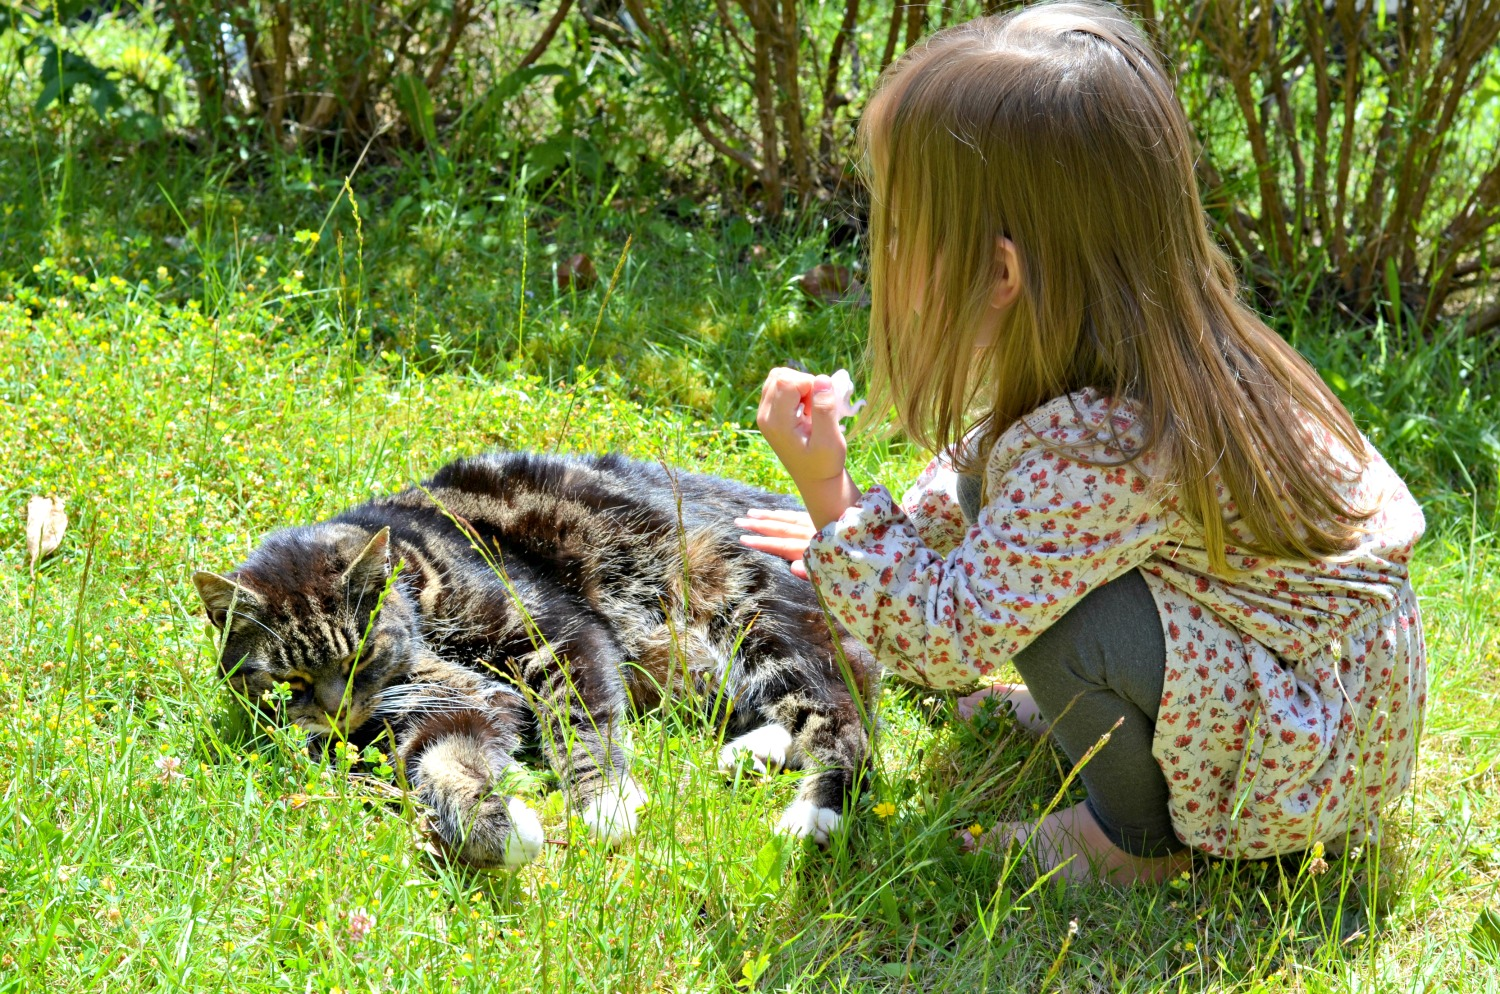 children, cute, pet, cat, animal, happy, parenting